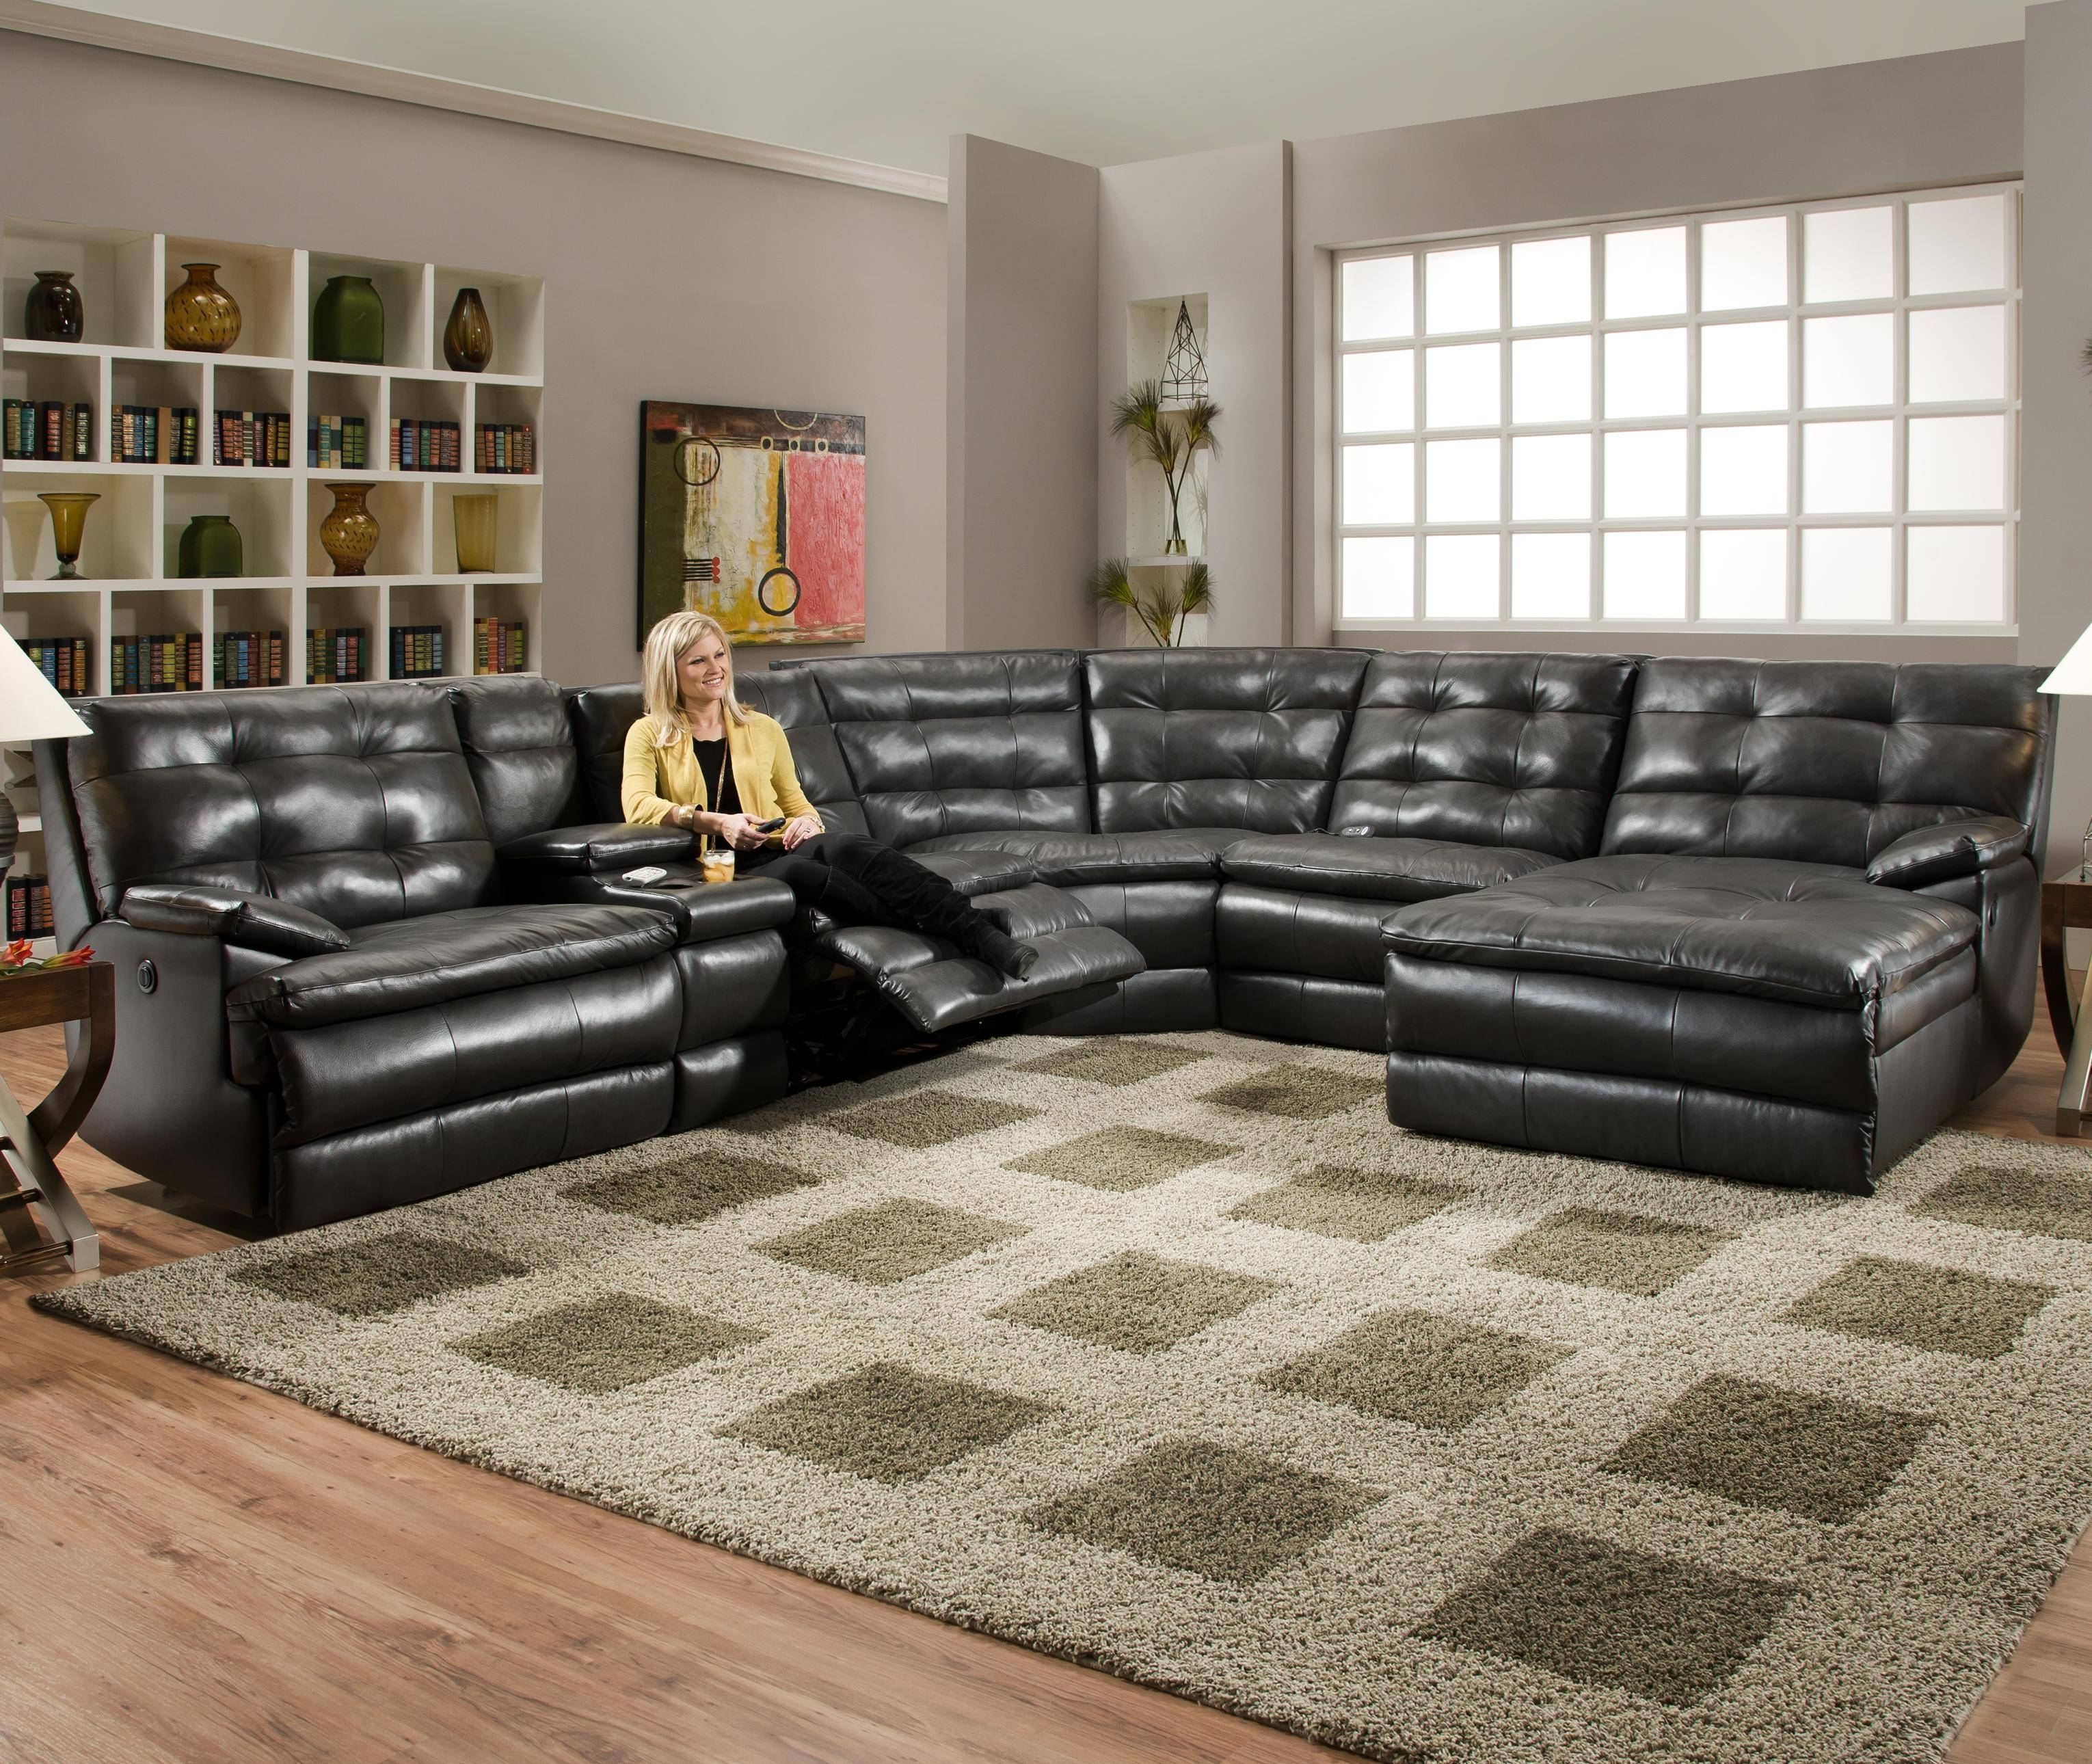 Stunning Leather Sectional Sofa With Power Recliner 17 On Berkline regarding Berkline Sectional Sofa (Image 30 of 30)